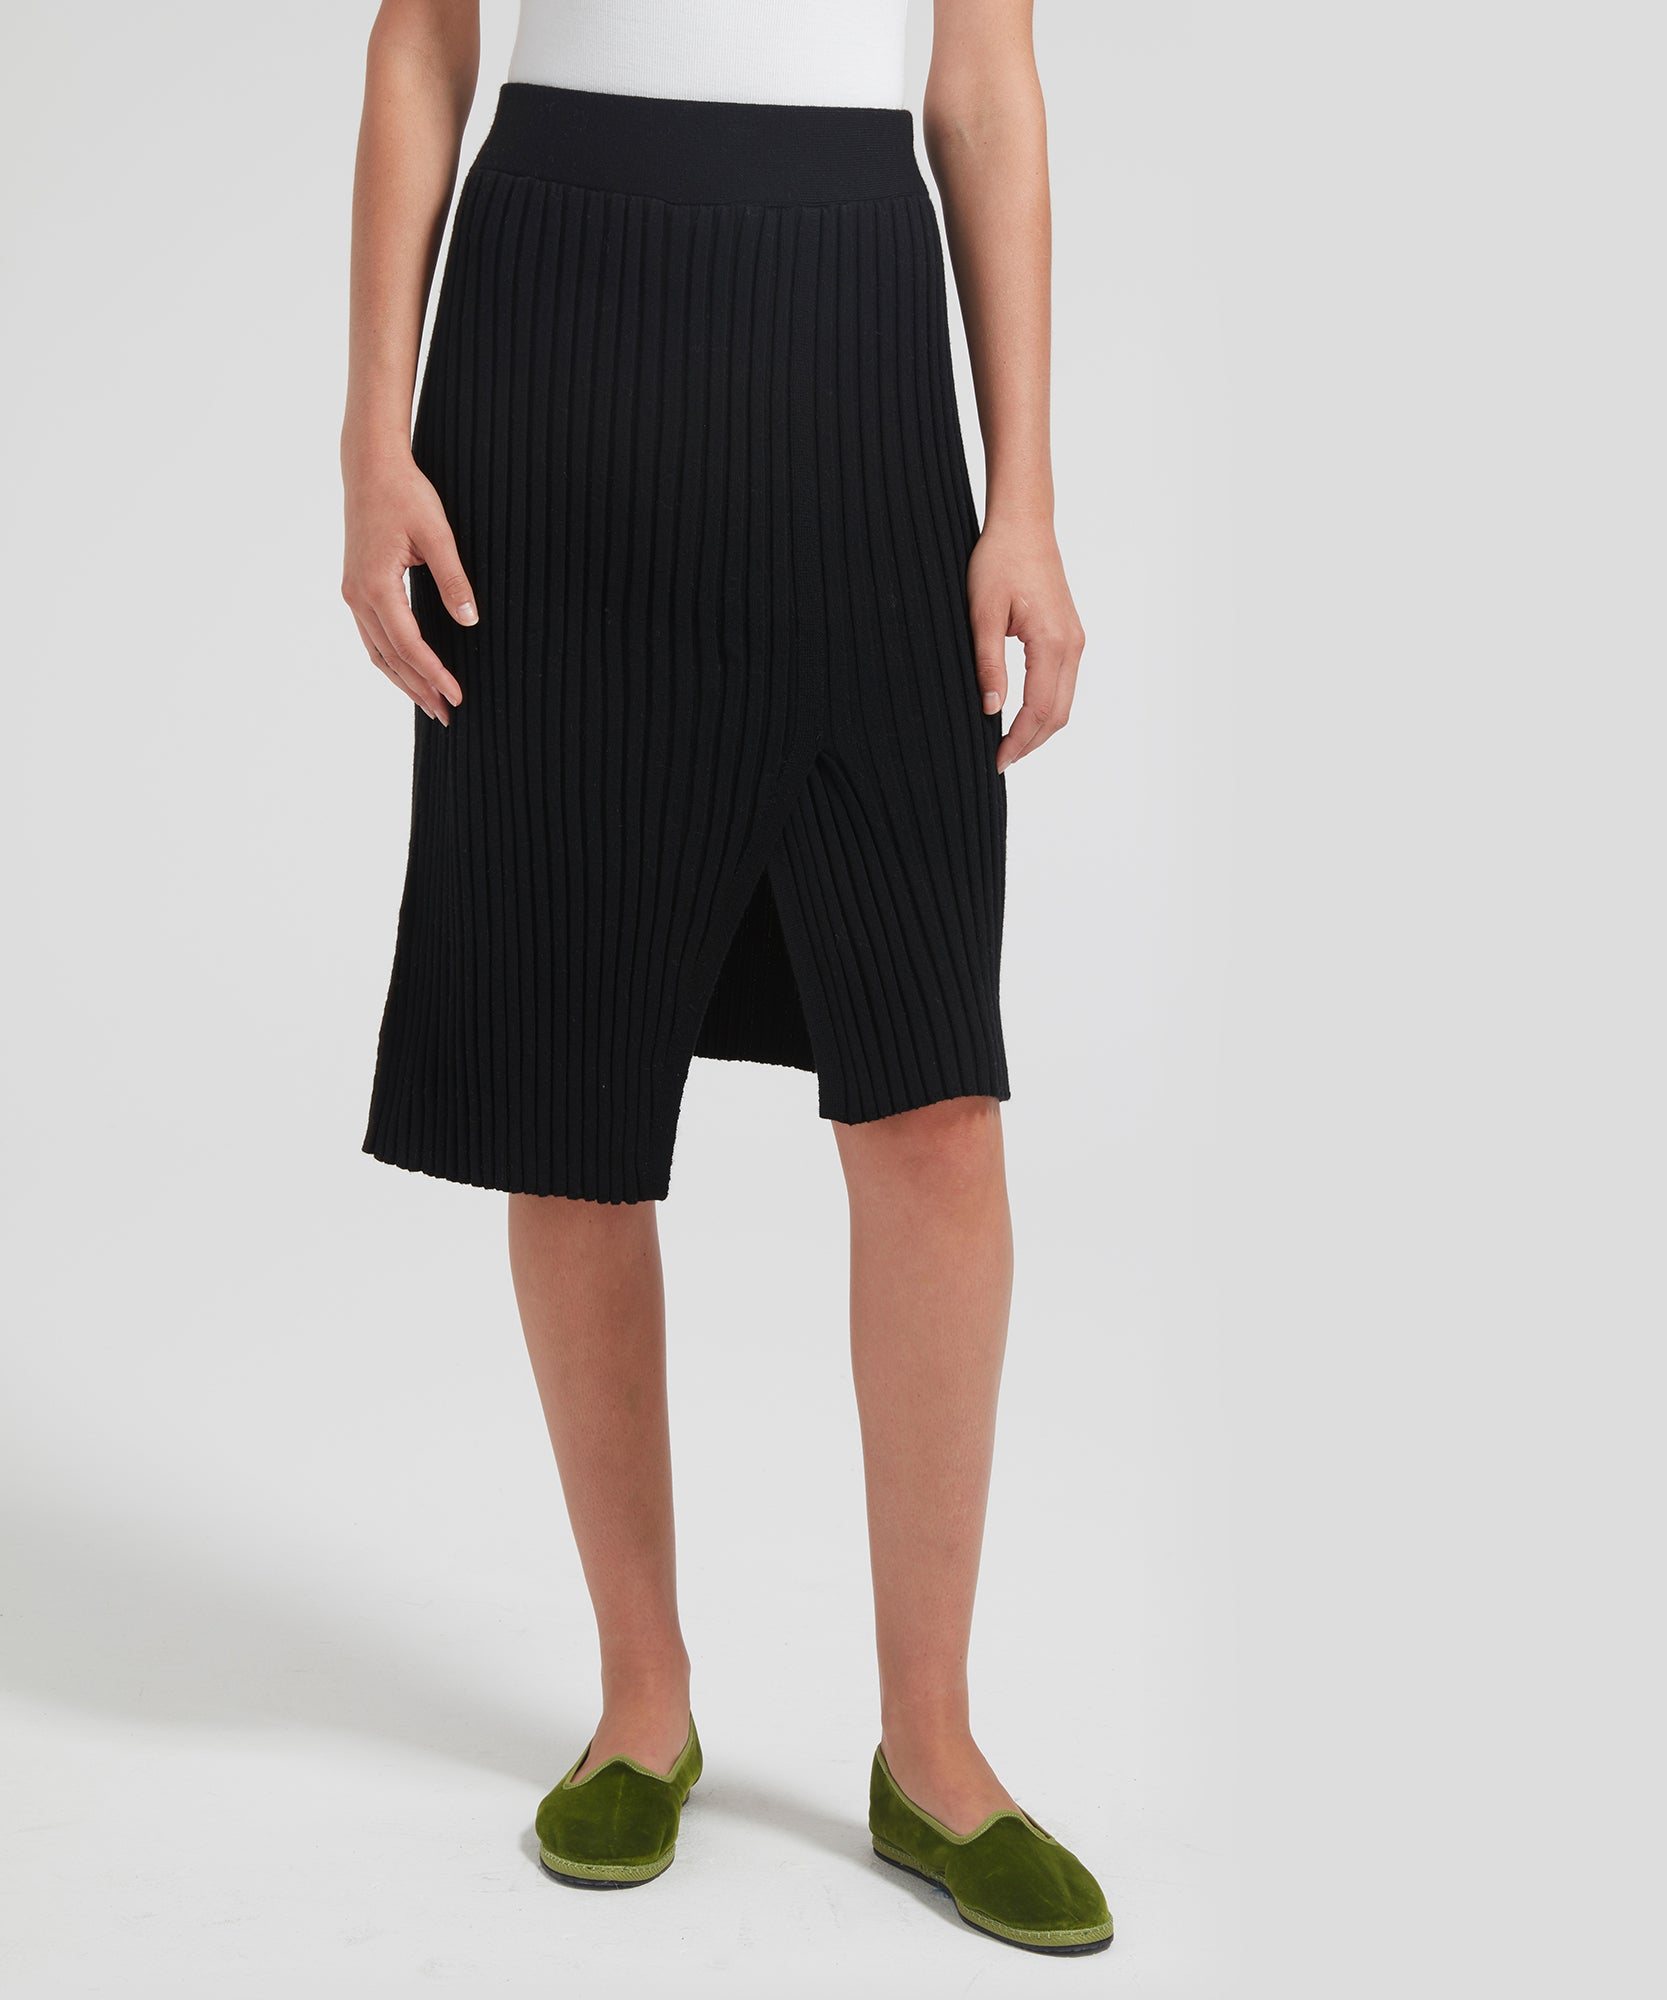 ATM Merino Wool Ribbed Pull-On Skirt